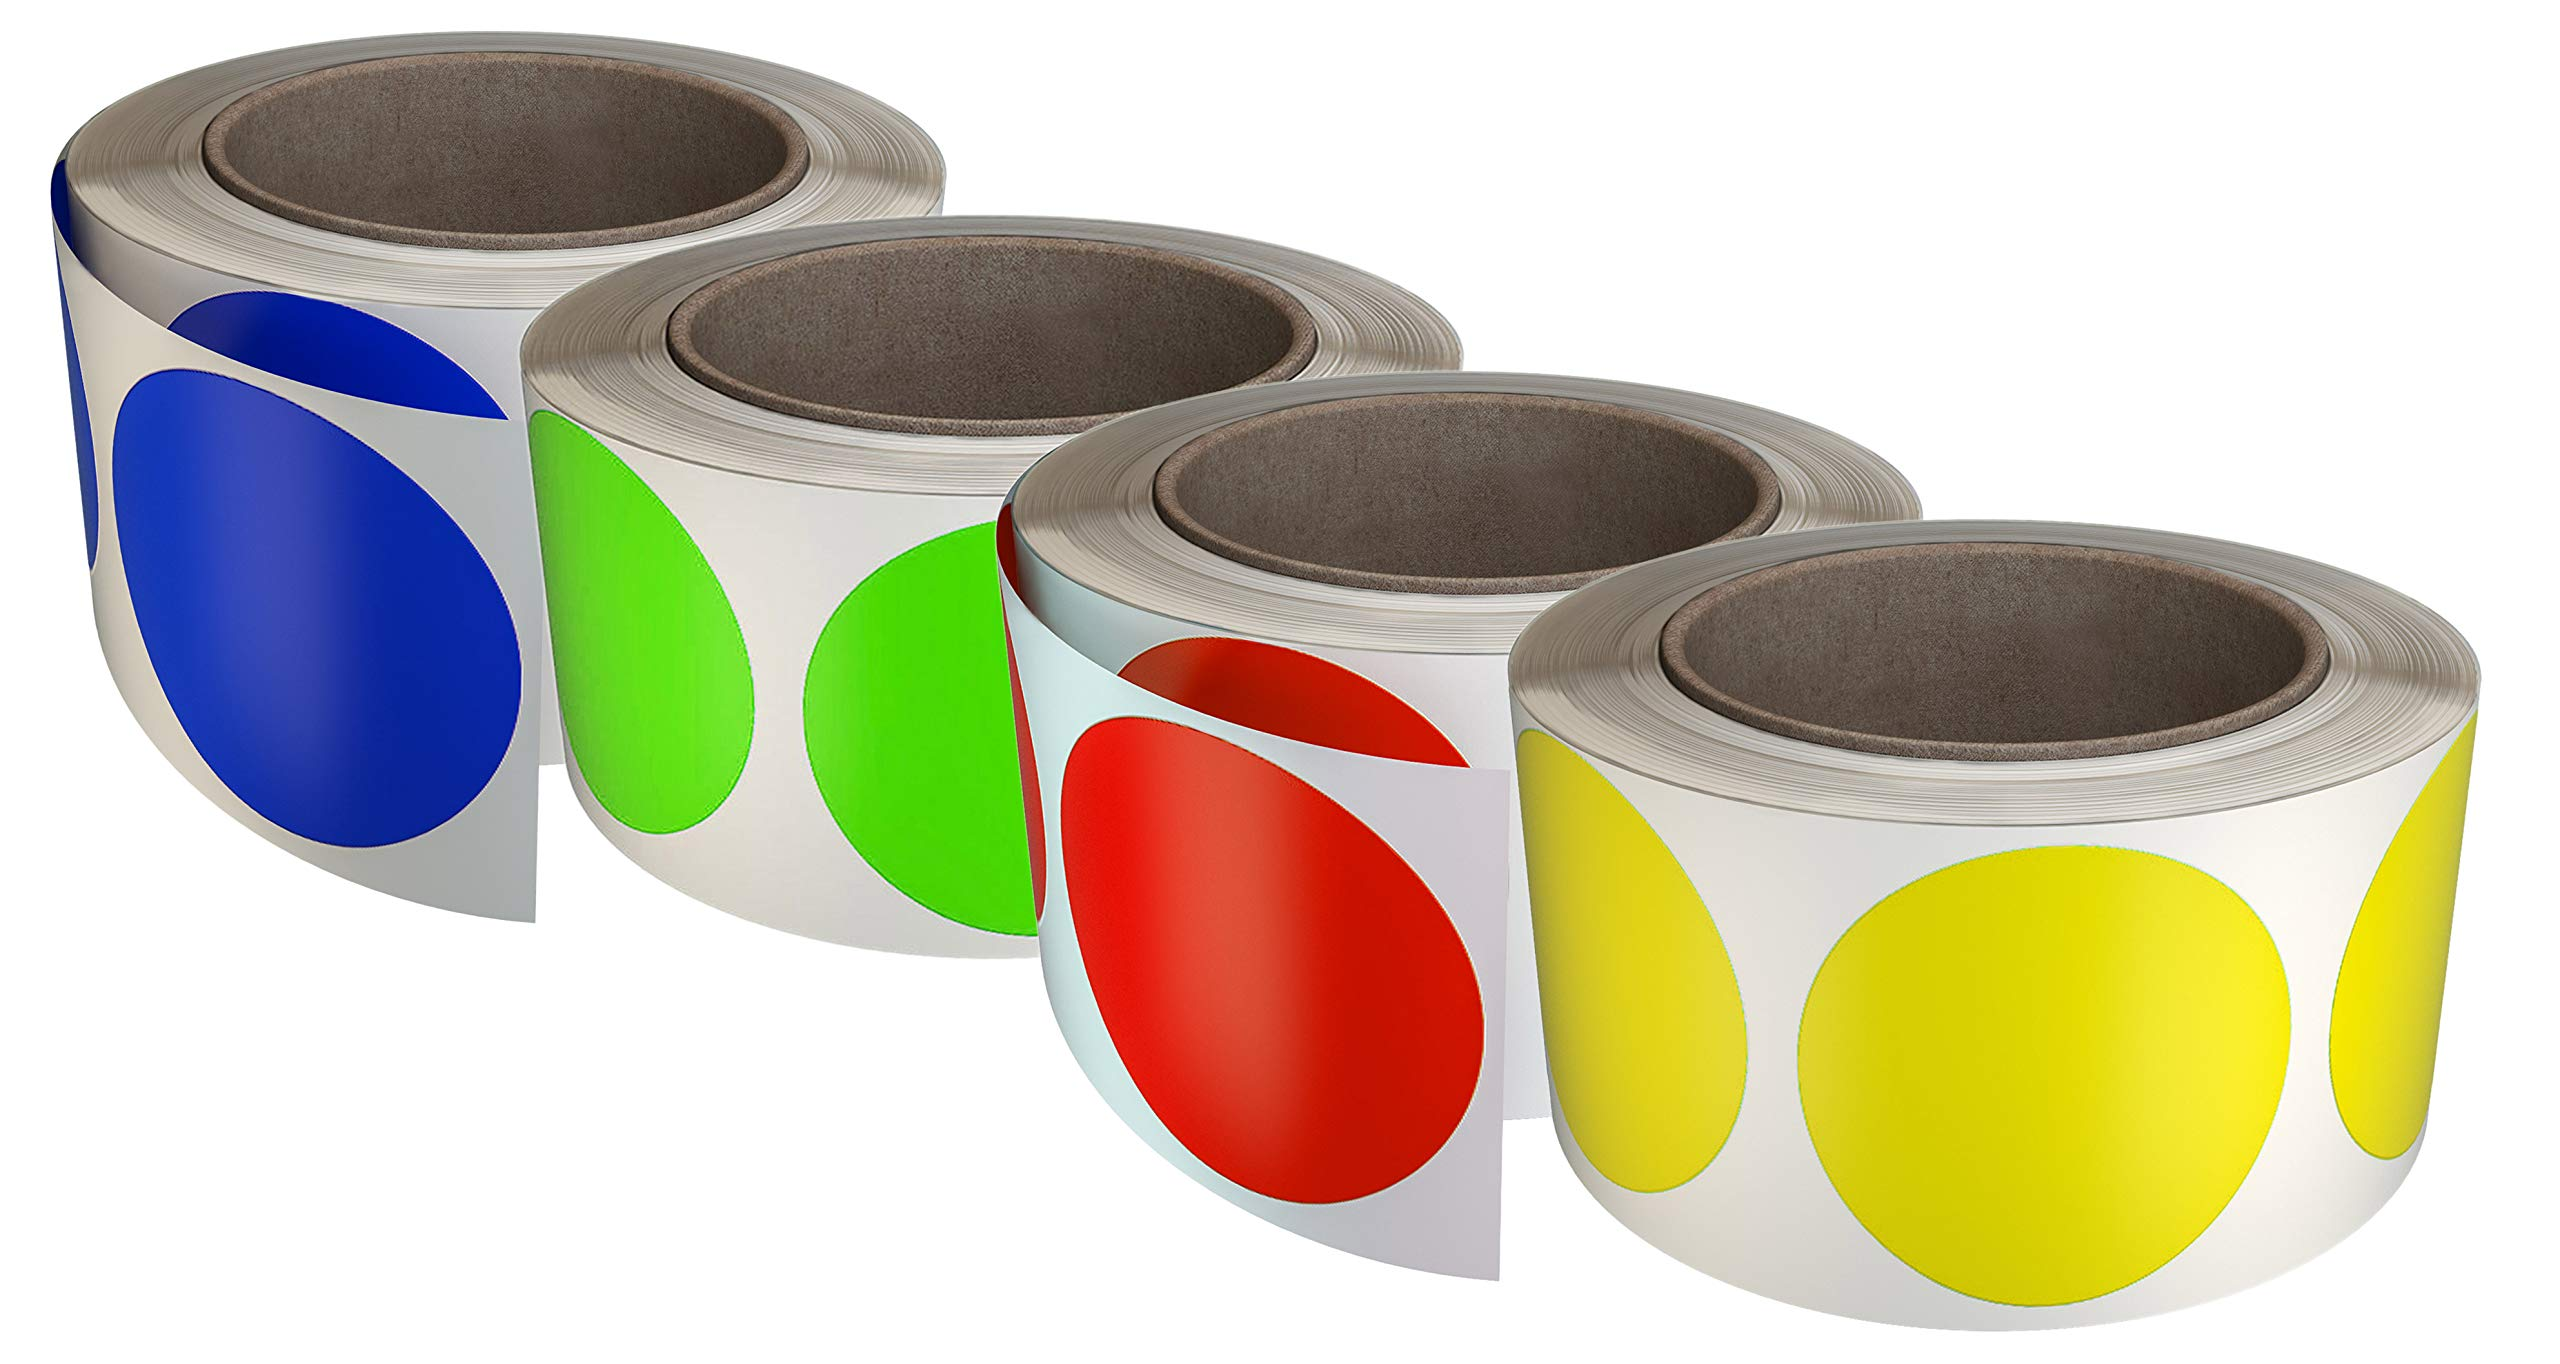 Royal Green Round Colored Label Stickers in 4 Colors Red, Blue, Yellow and Neon Green 50mm (2 inch) - Circle Sticker dots - 2400 Pack by Royal Green